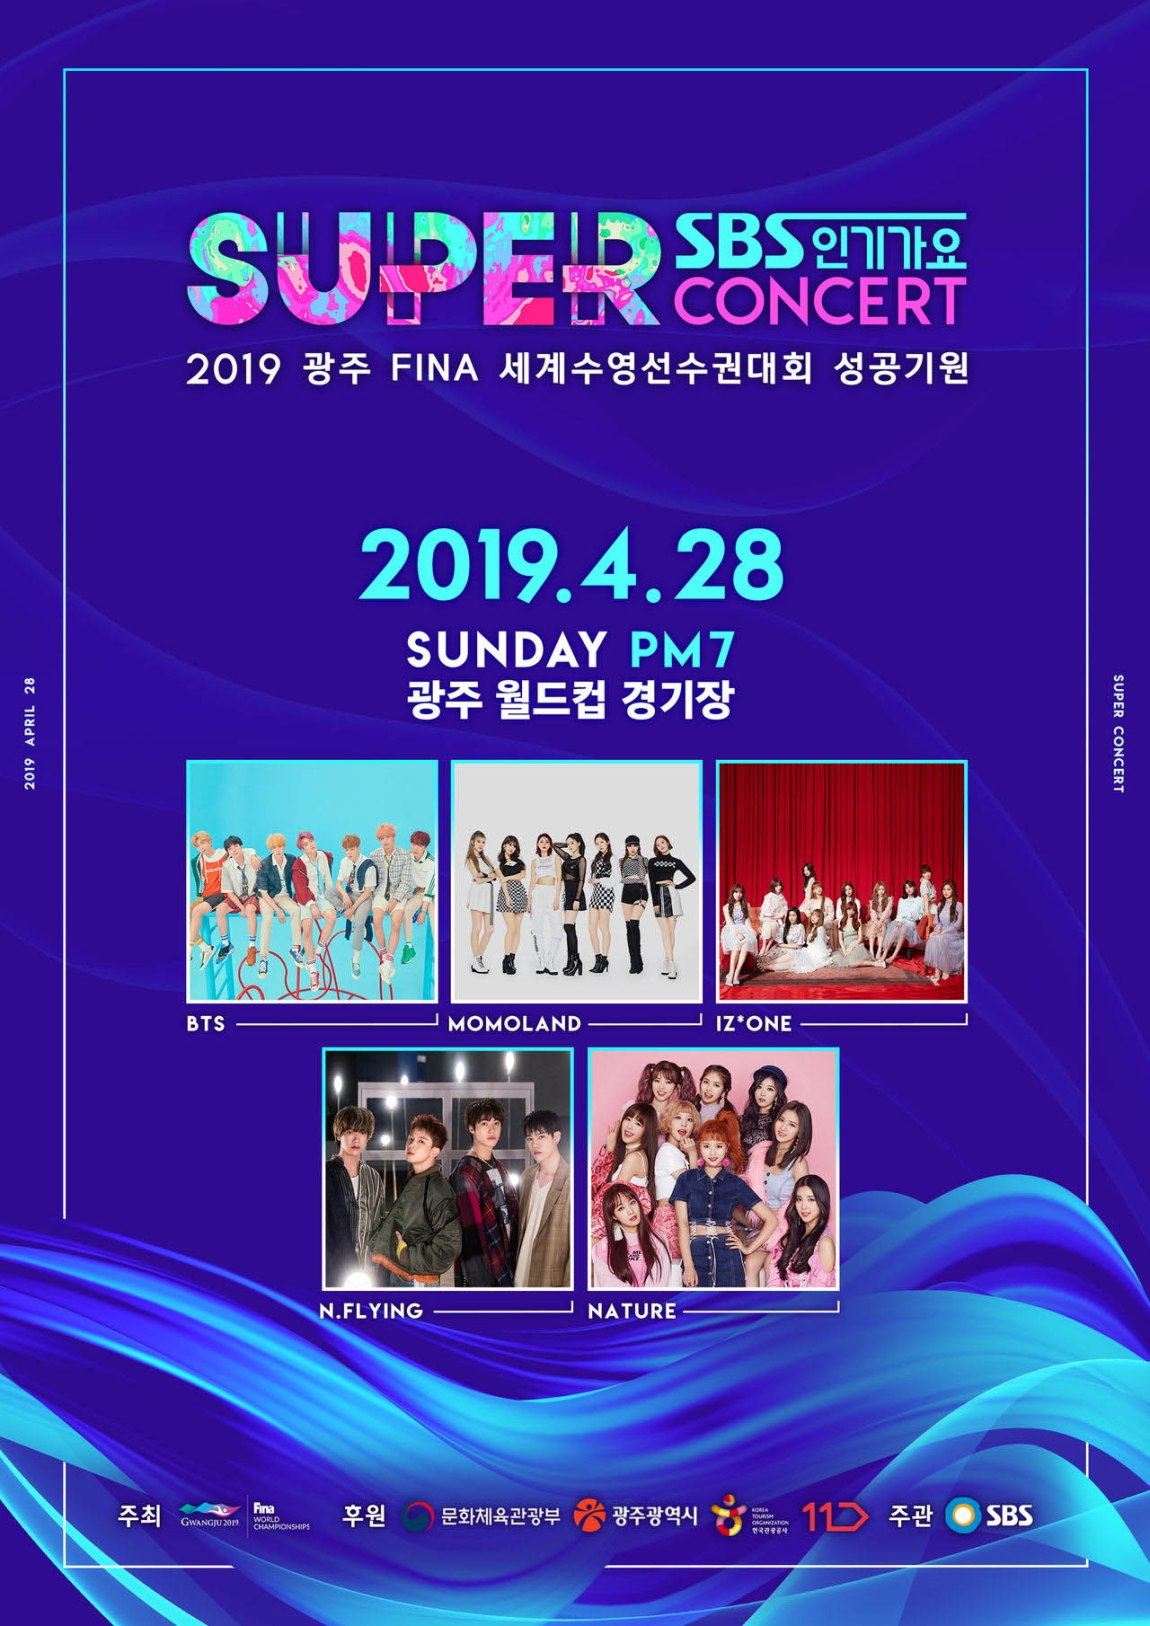 The first lineup of SBS Inkigayo Super Concert 2019 | HaB Korea net